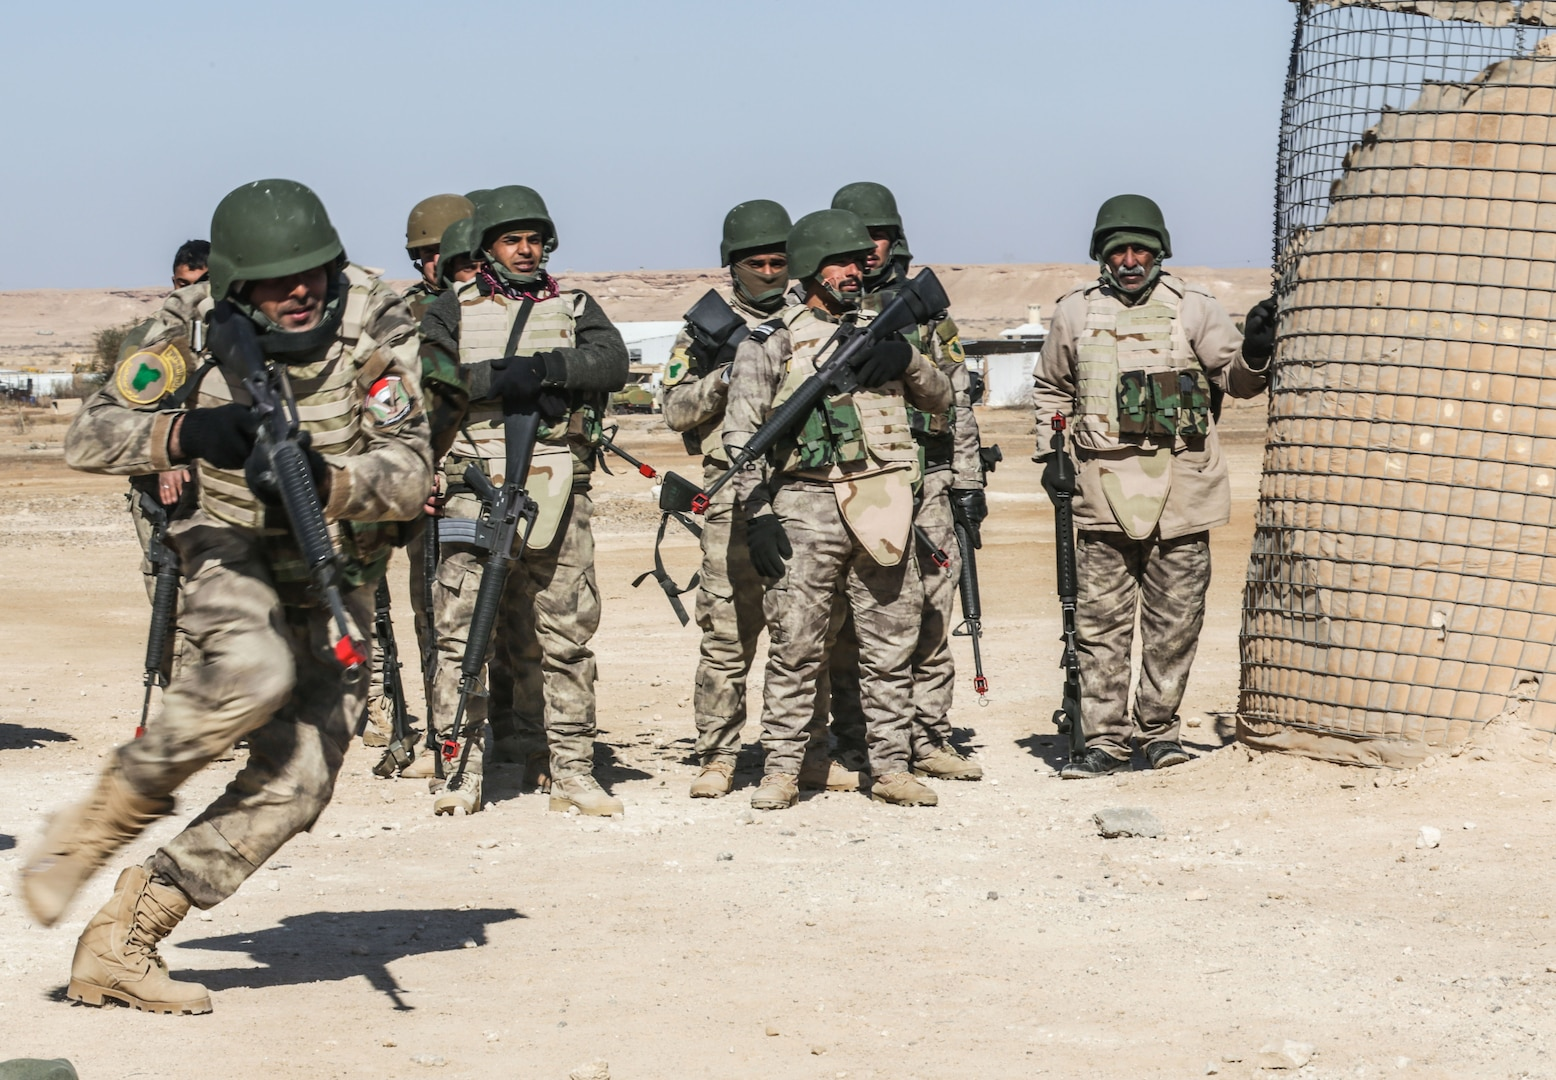 Iraqi security forces soldiers conduct react to contact training at Al Asad Air Base, Iraq, Feb. 1, 2017. Training at building partner capacity sites is an integral part of Combined Joint Task Force – Operation Inherent Resolve's effort to train ISF personnel.  CJTF-OIR is the global Coalition to defeat ISIL in Iraq and Syria.  (U.S. Army photo by Sgt. Lisa Soy)